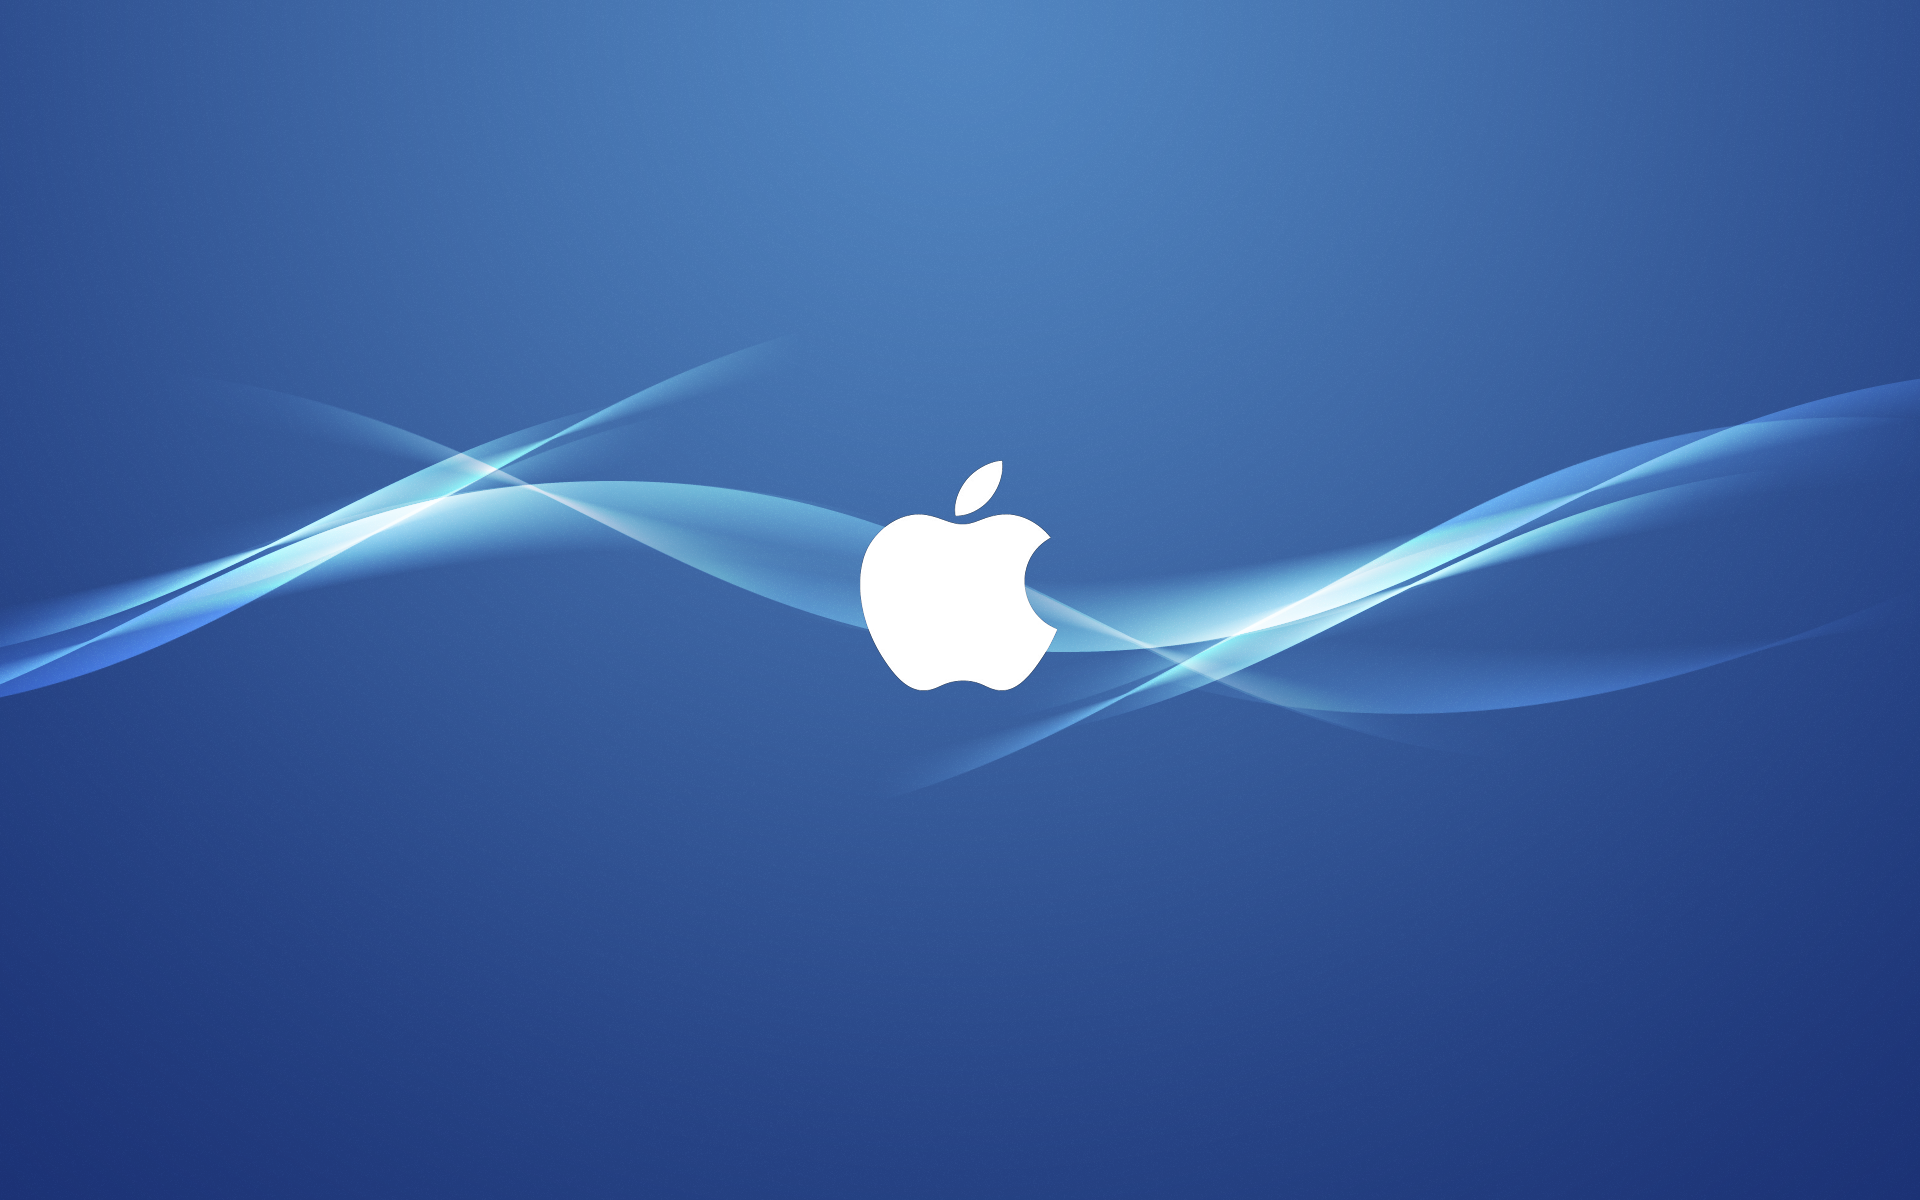 Beautiful Wallpaper Macbook Background - blue-apple-wallpaper-45215-46412-hd-wallpapers  Gallery_193264.jpg